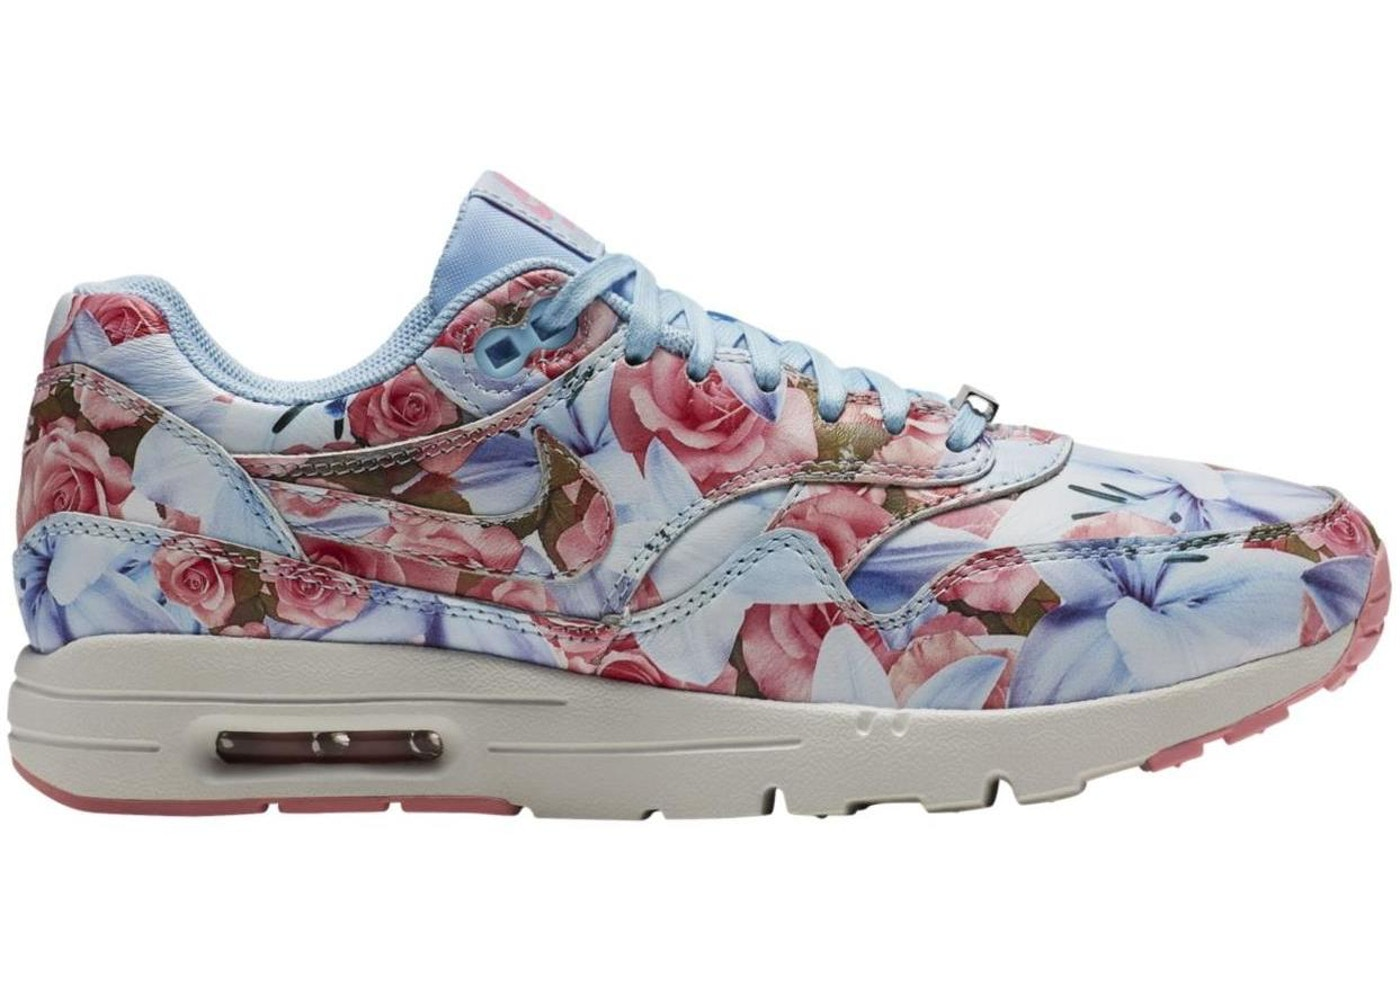 huge selection of 905cd 456dd Air Max 1 Paris City Collection (W) - 747105-400